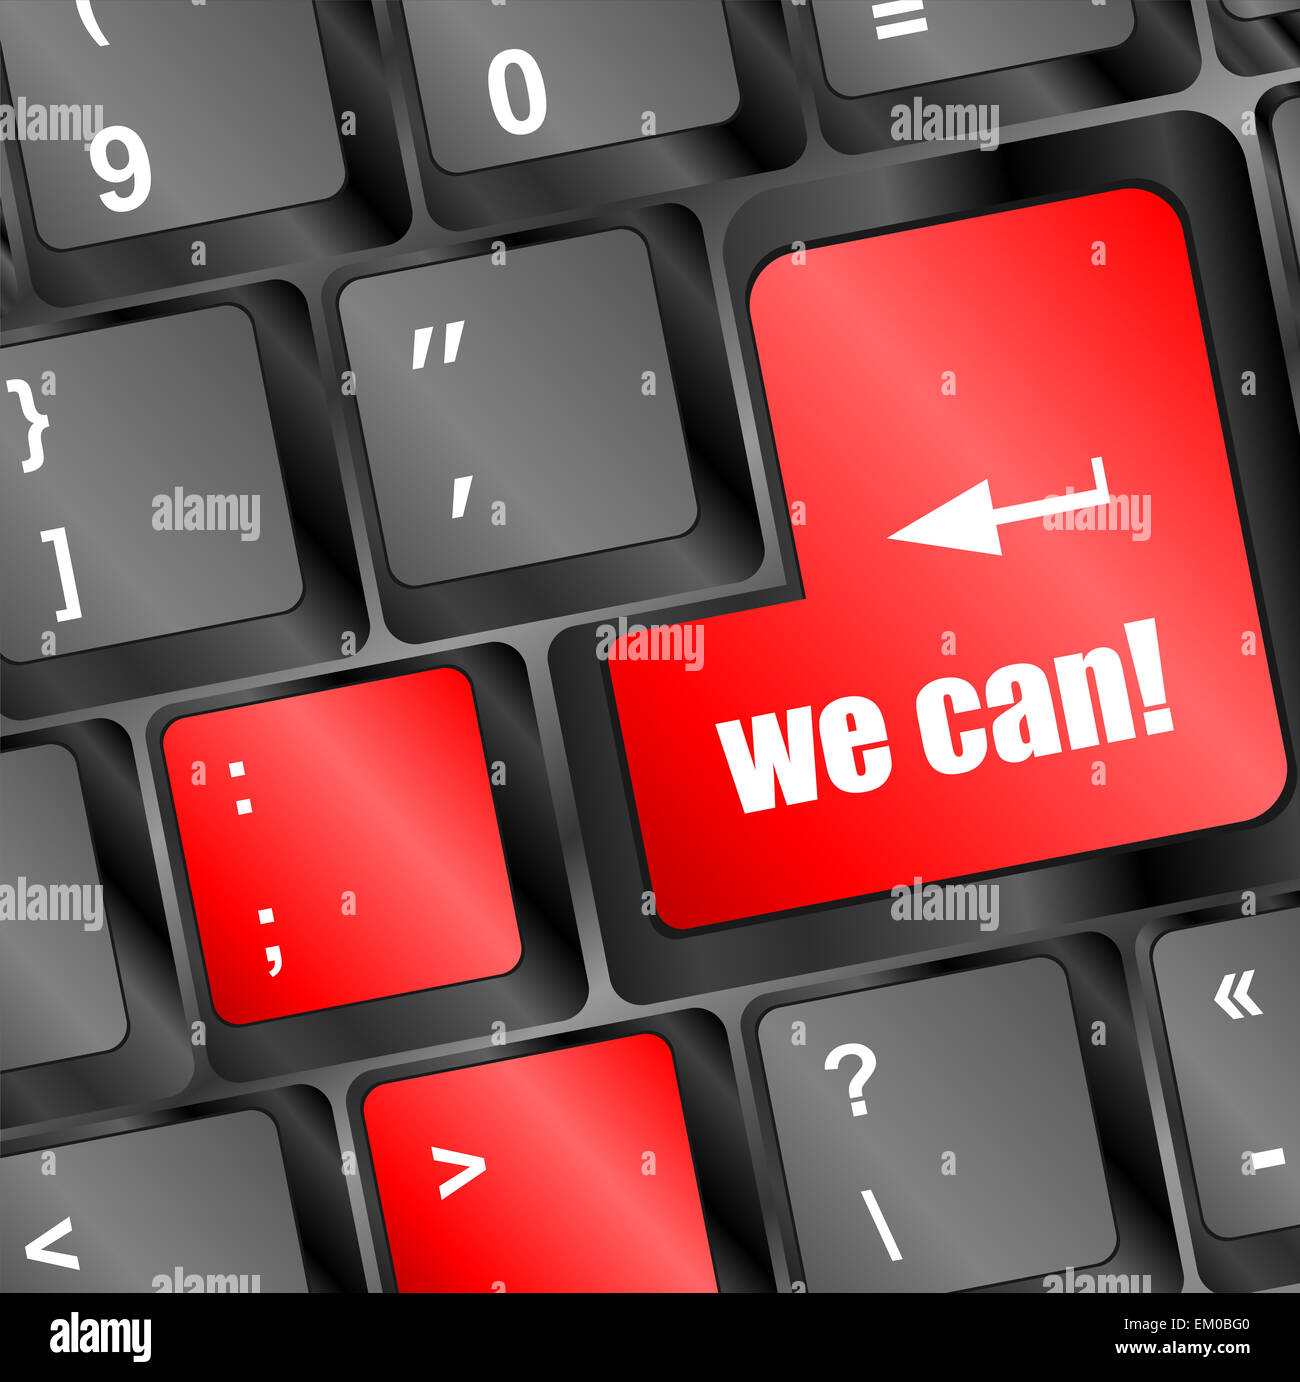 we can button on computer keyboard key Stock Photo